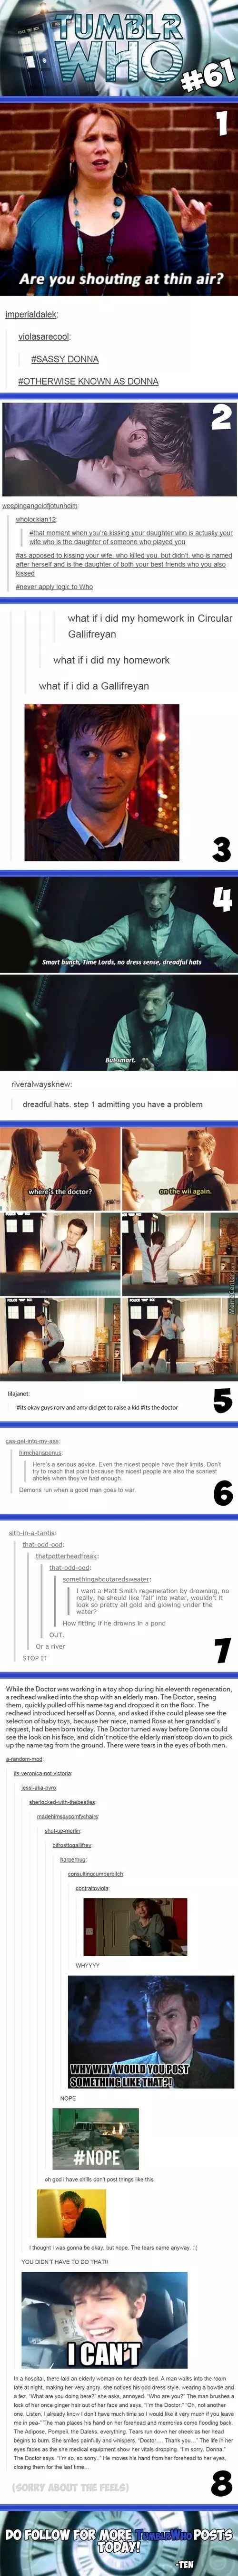 Doctor who tumblr #61 This gave me chills!!!